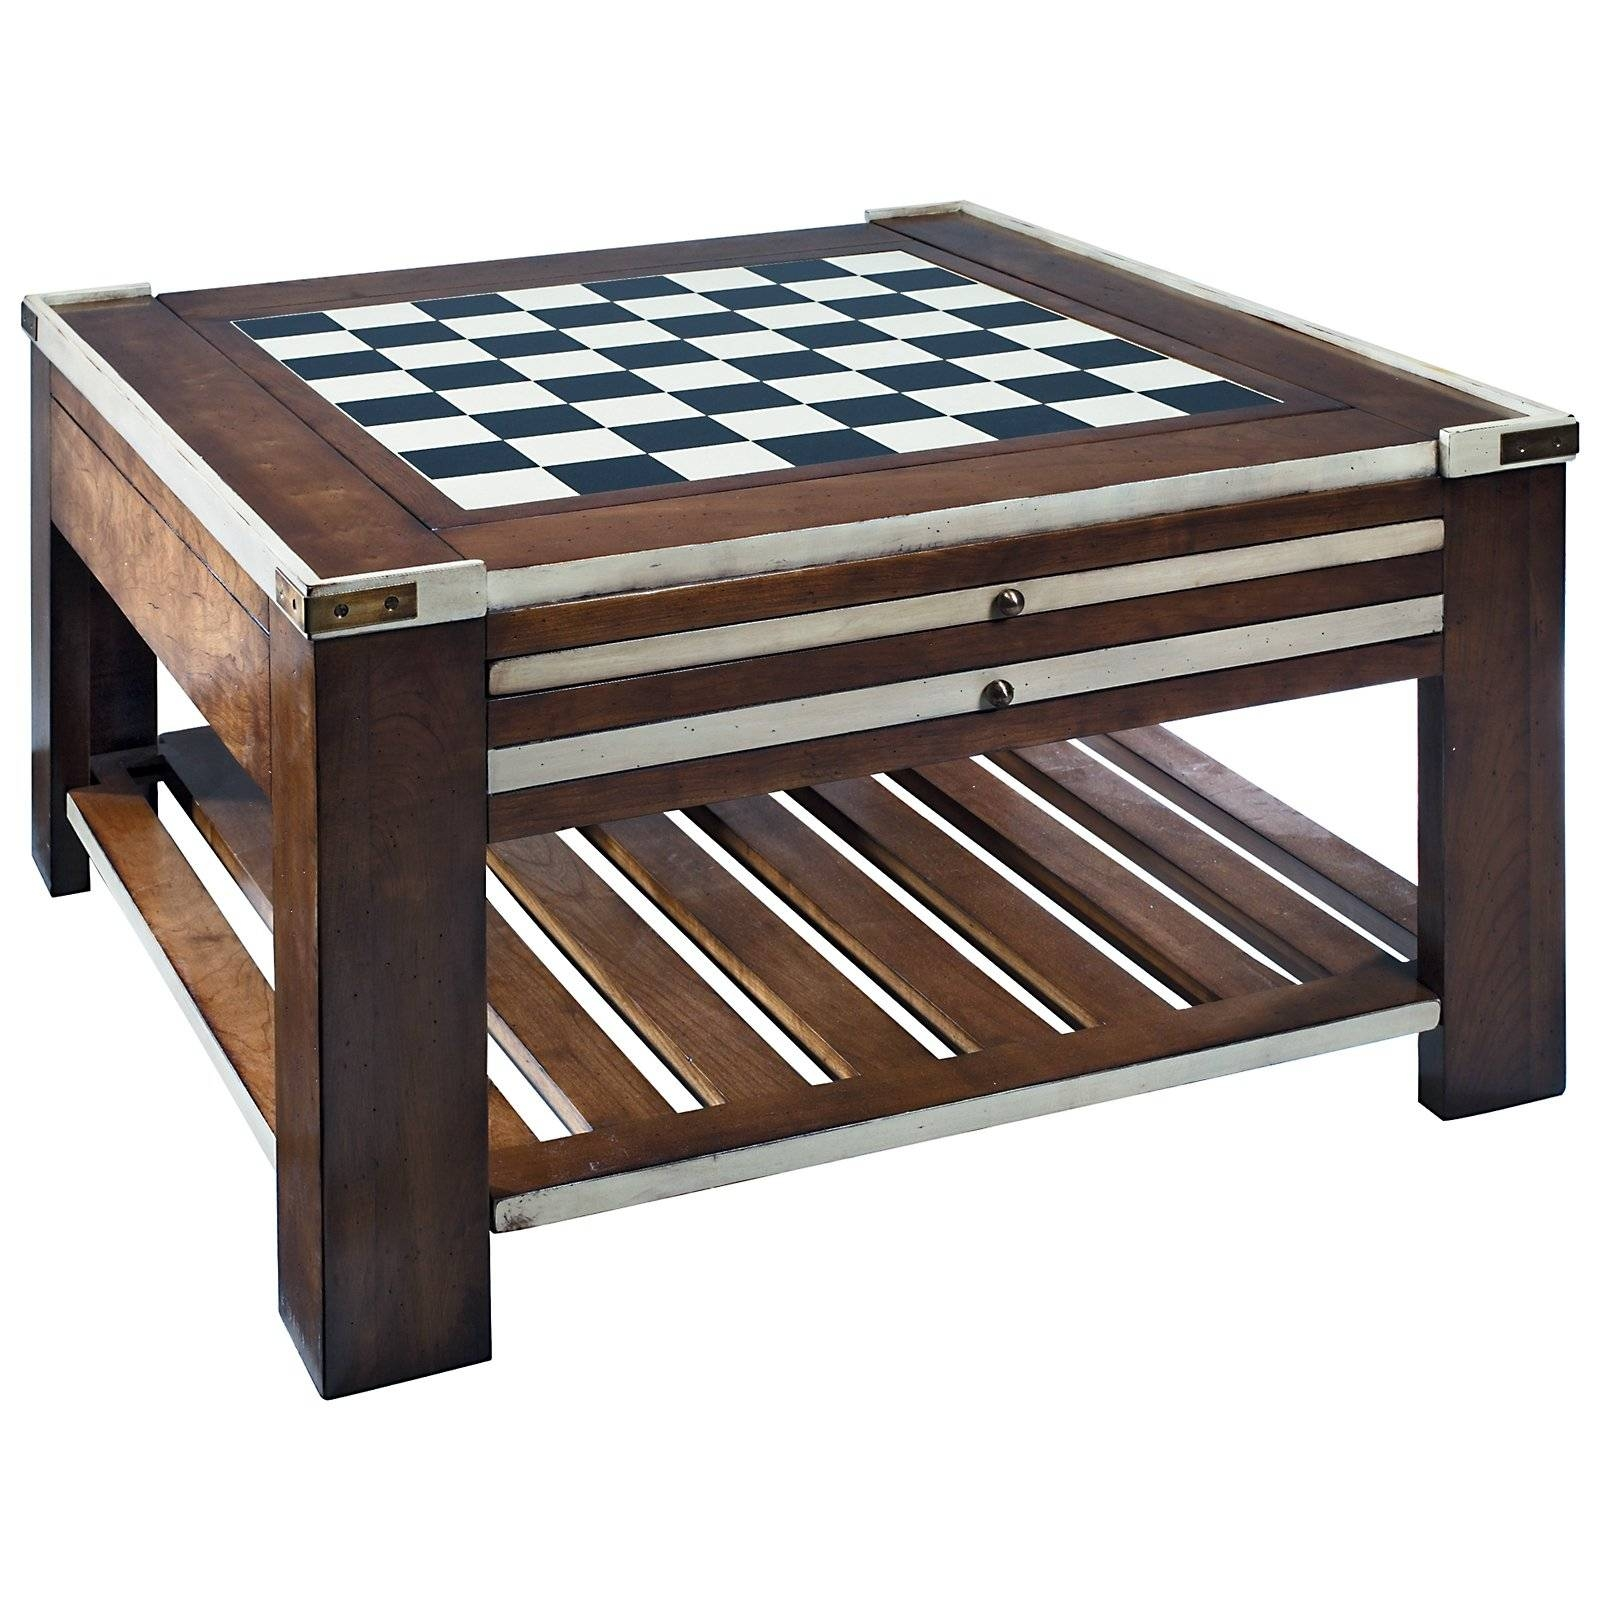 Coffee Table: Beautiful Chess Coffee Table Designs Coffee Table throughout Square Dark Wood Coffee Tables (Image 6 of 30)